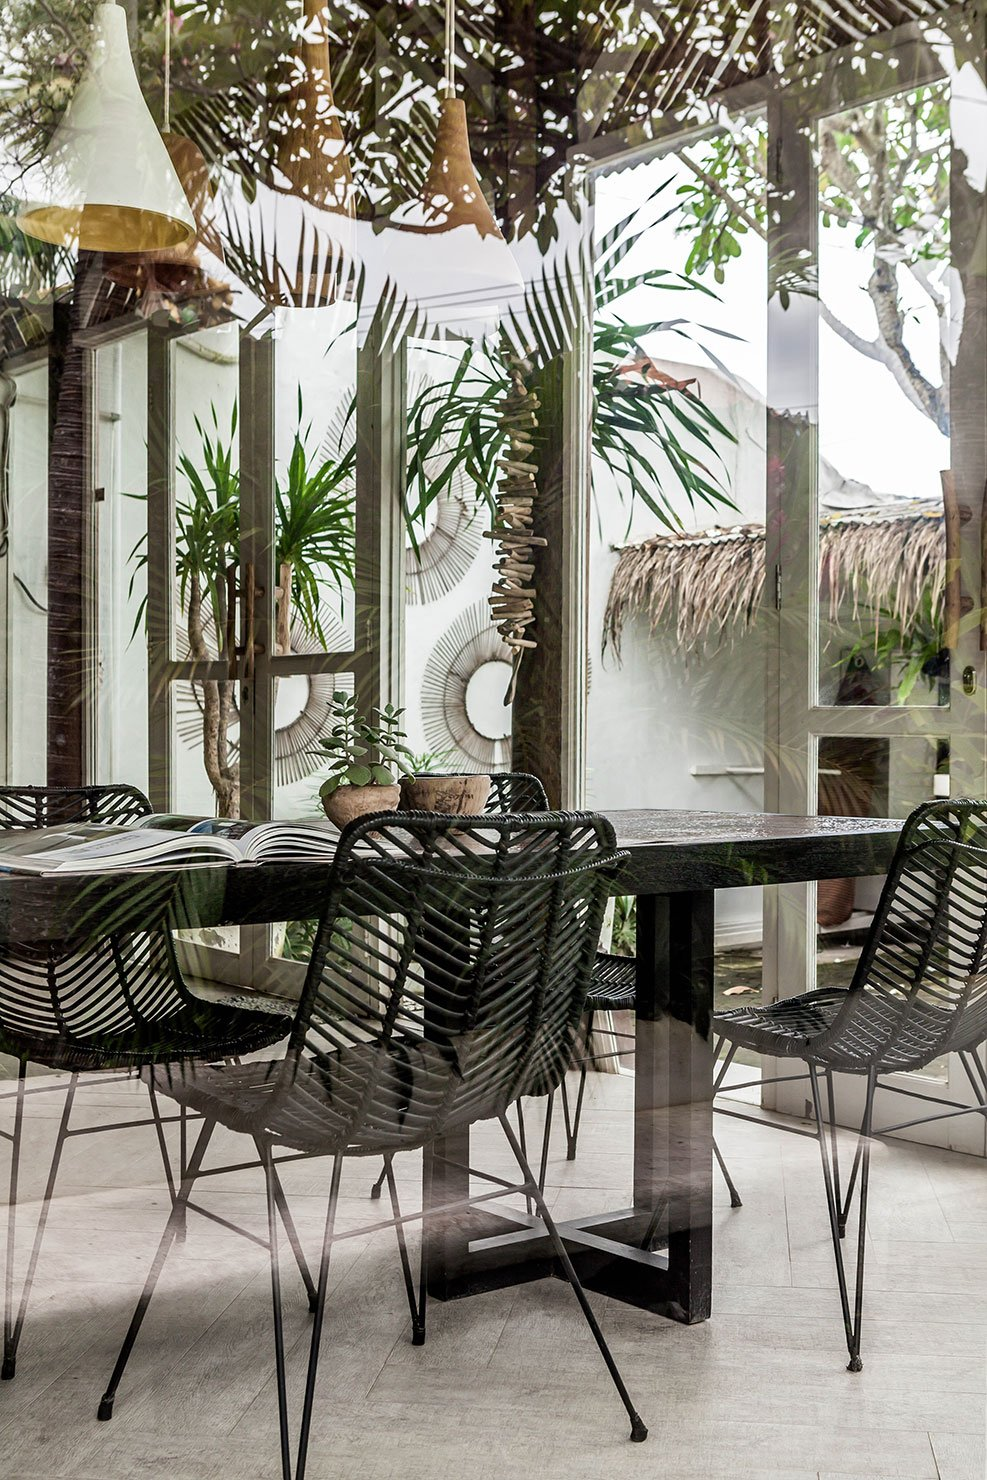 biombo architecture and Bali Interiors